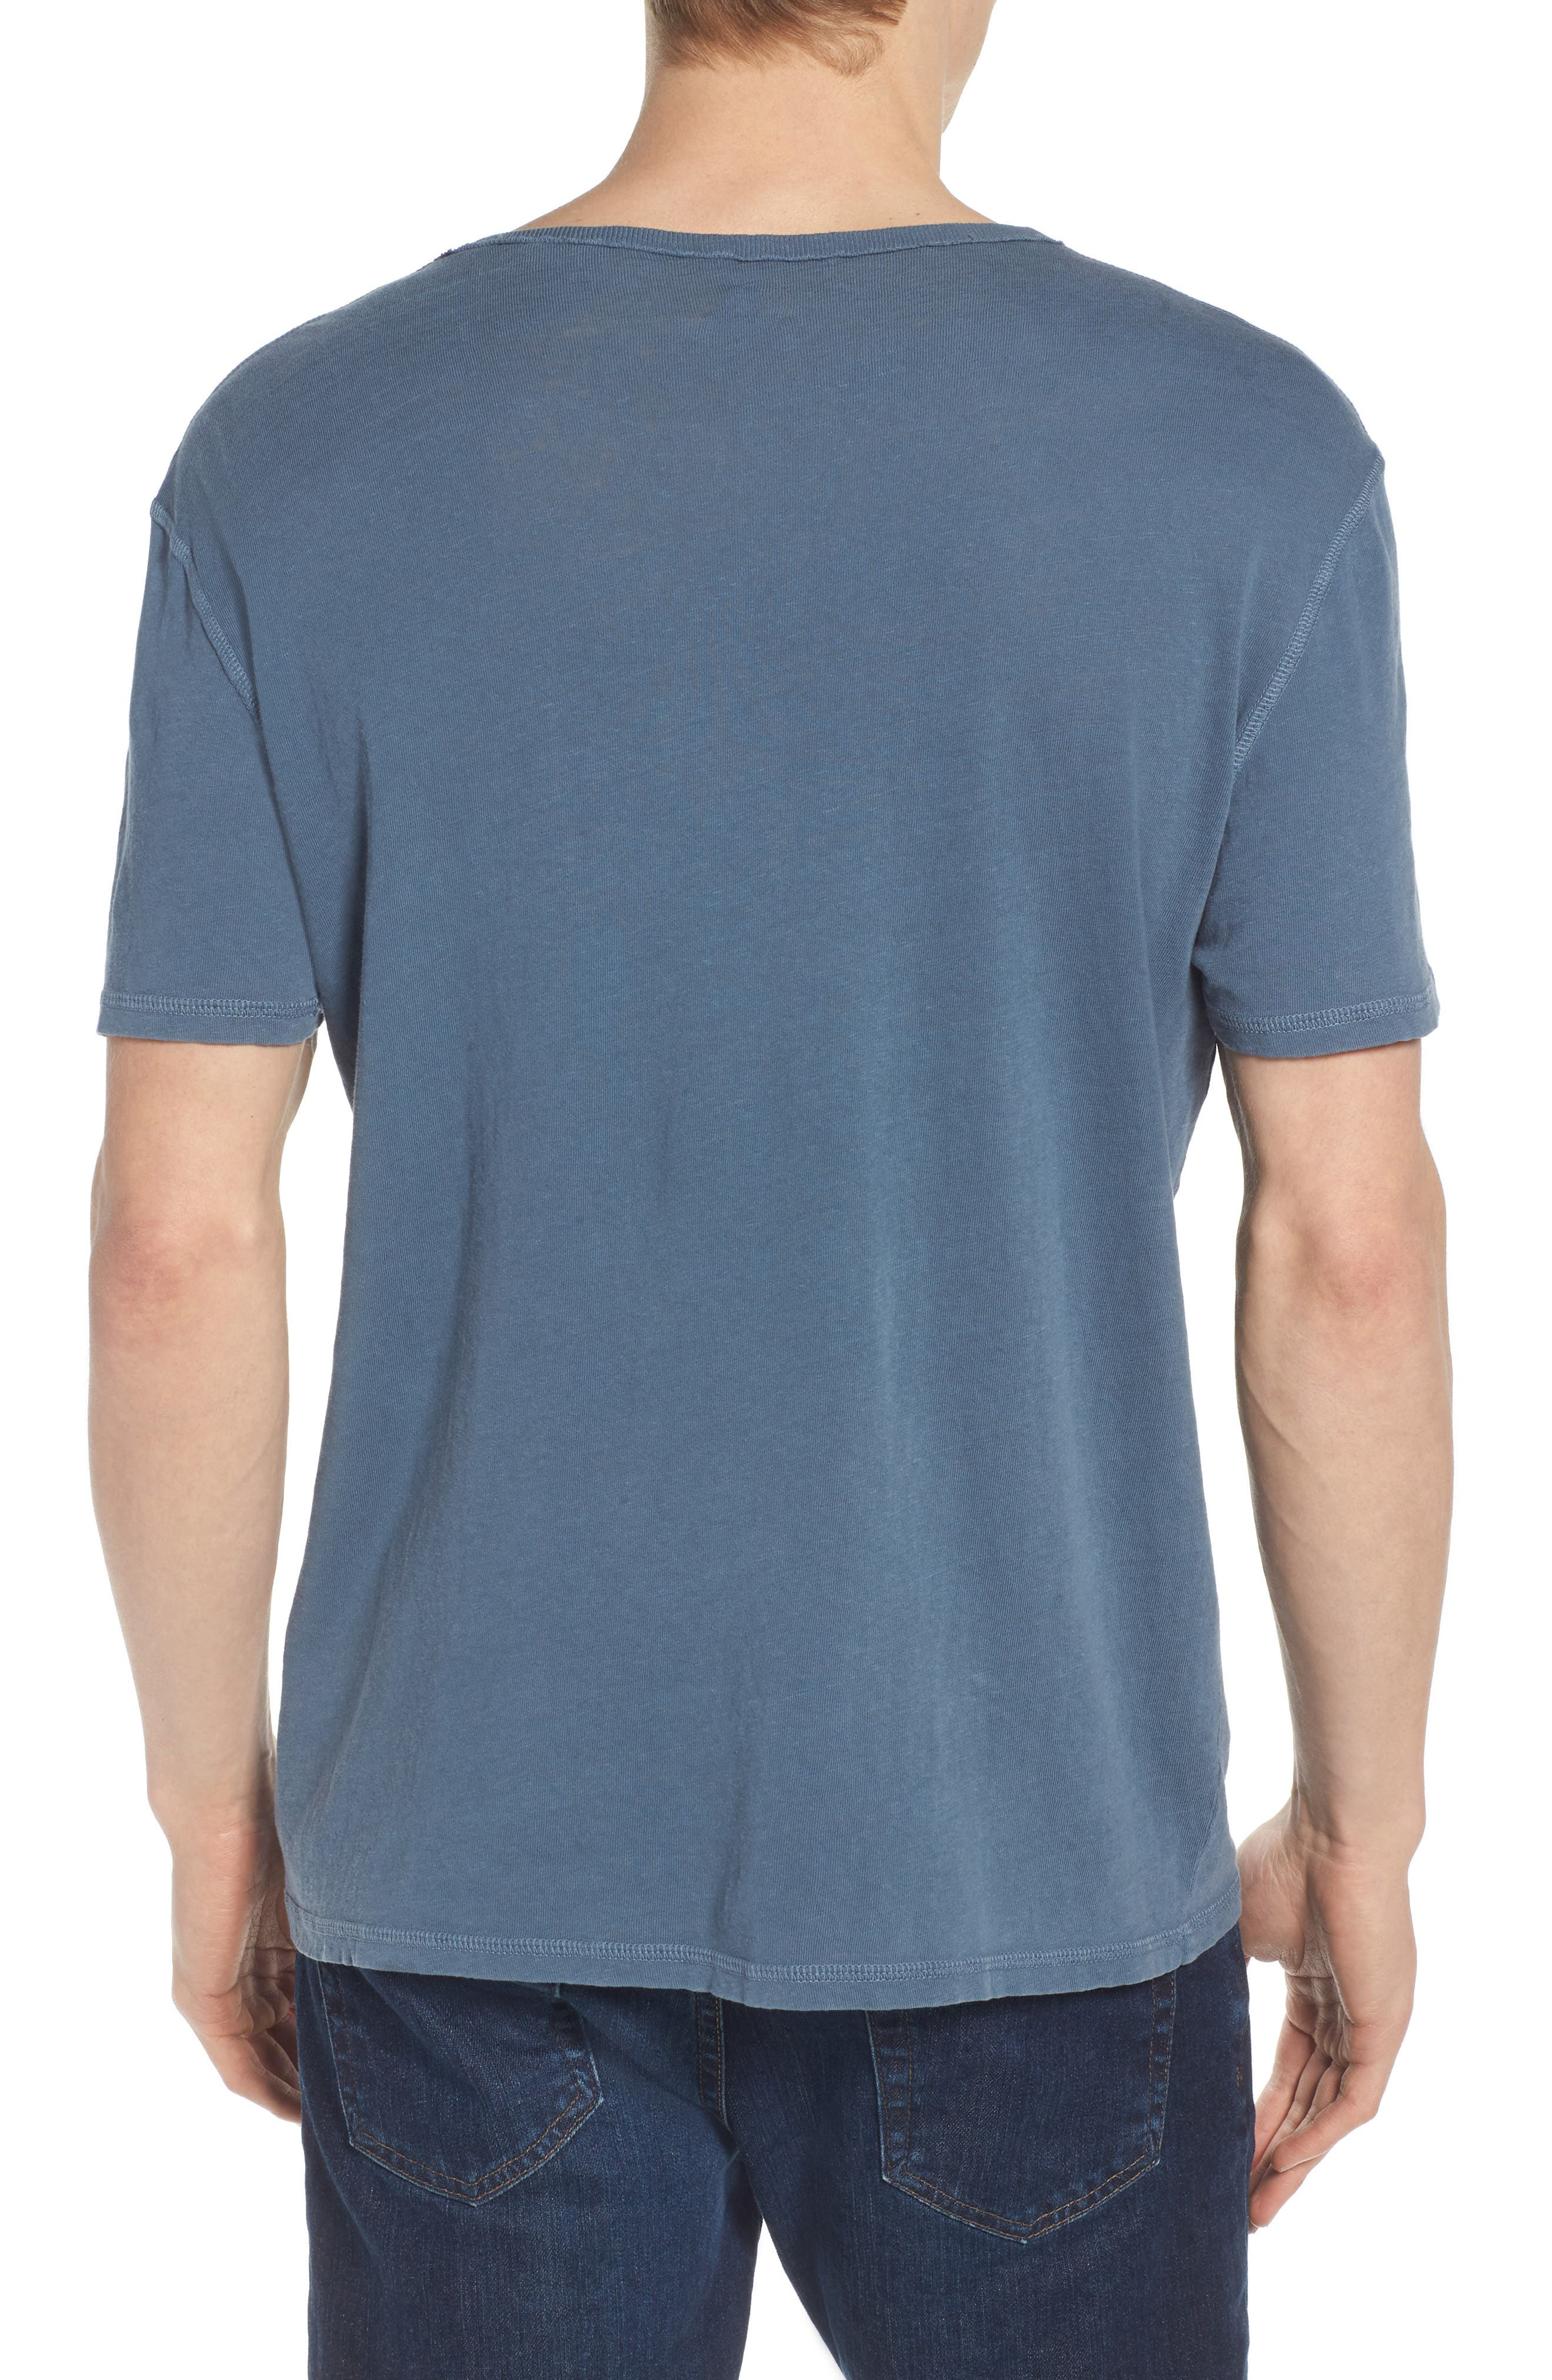 Ramsey Slim Fit Crewneck T-Shirt,                             Alternate thumbnail 2, color,                             Weathered Pacific Coast